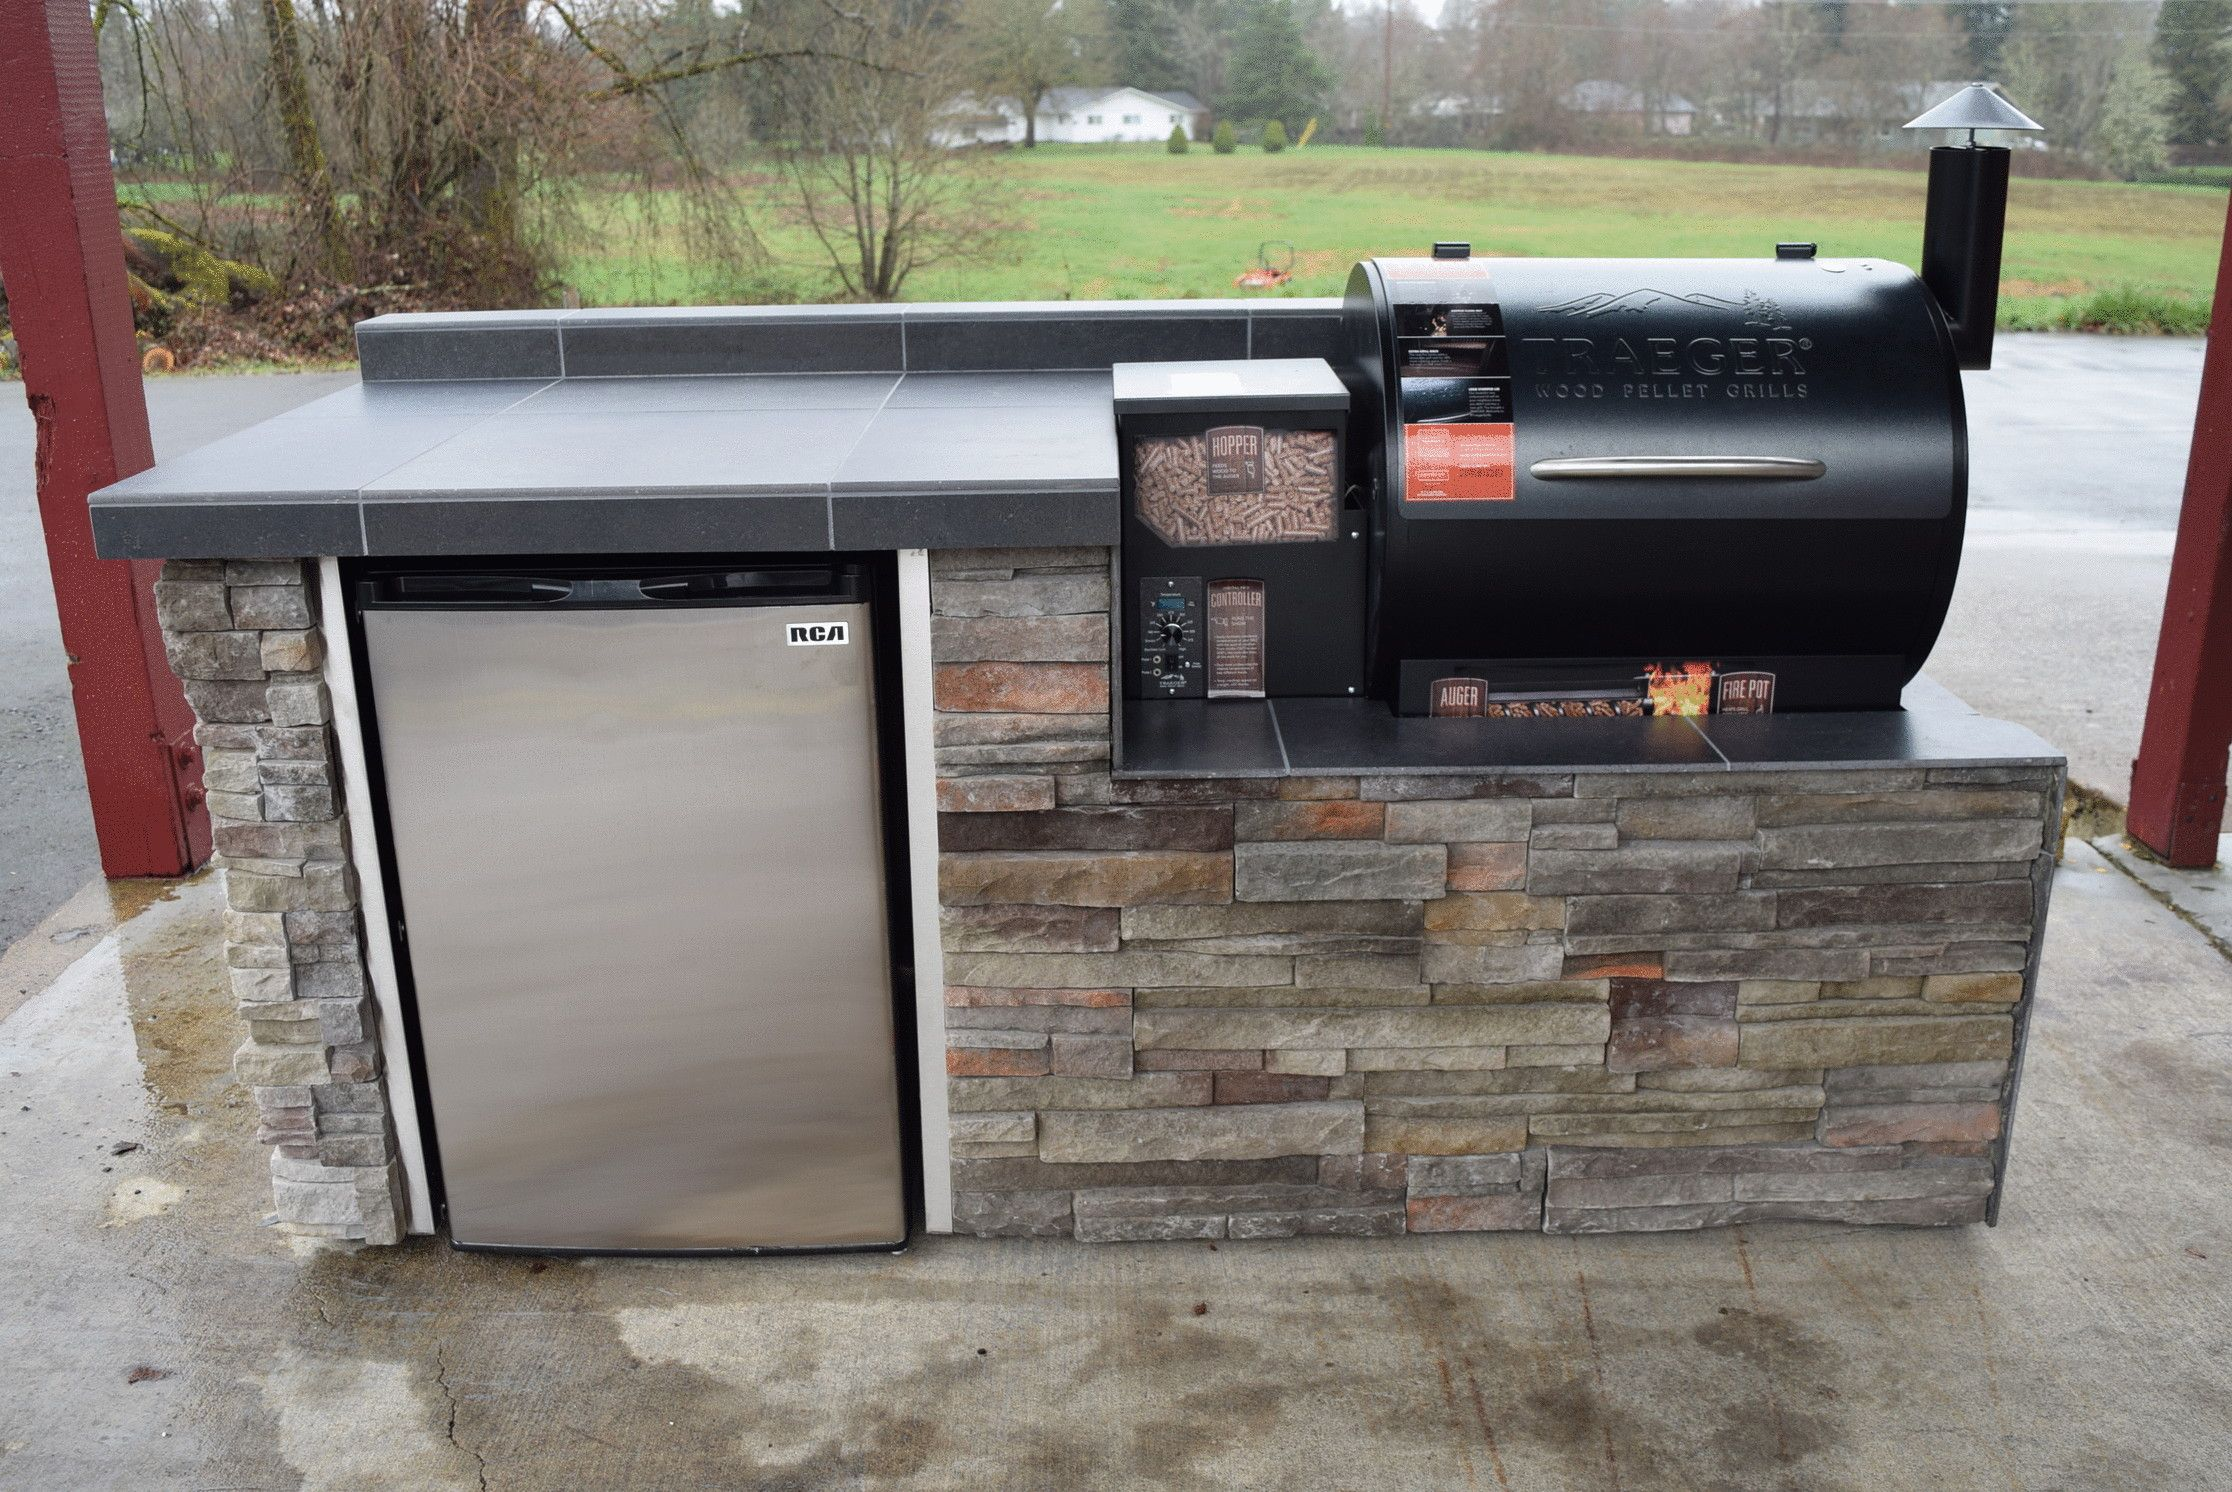 Outdoor Kitchen Bbq Hutch For Sale The Traeger Pellet Grill Sunset Living Linkedin